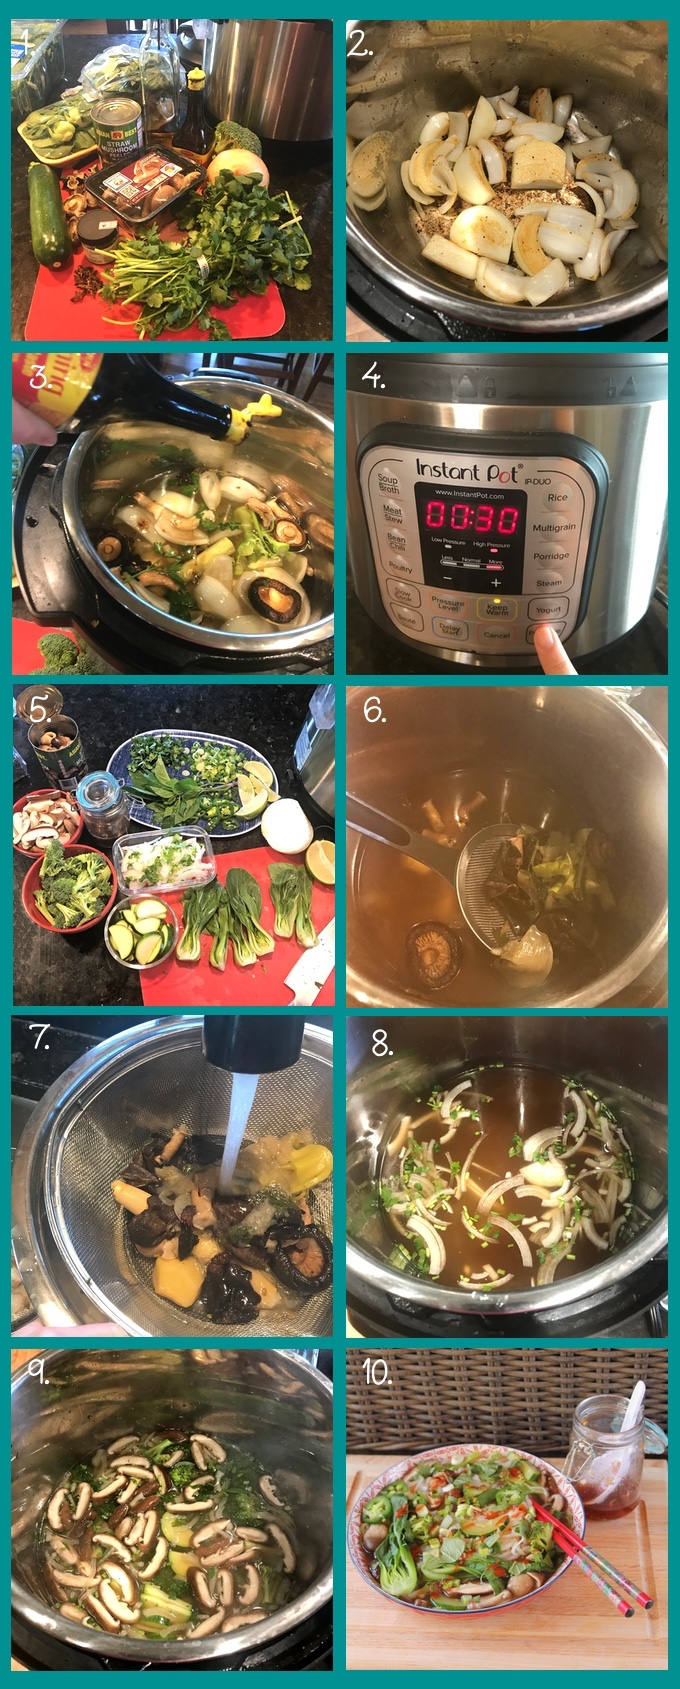 Prepration steps for making Instant Pot Vegetable Pho Noodle Soup. 1. The ingredients: zucchini, dried shiitake and wood ear mushrooms, baby bok choy, canned straw mushrooms, Thai basil, olive oil, Maggi seasoning sauce, broccoli, sweet yellow onion, cilantro, star anise, and fennel. 2. Sauteing onions using the Instant Pot's saute function. 3. The remaining vegetables and scraps for the broth covered with water, being sprinkled with Maggi Seasoning Sauce. 4. Setting the Instant Pot's pressure cooker function (after sealing the lid and closing the pressure release valve). 30 minutes on high pressure. 5. Prepping the vegetables for the soup while the broth cooks. 6. Skimming the large solids out of the finished broth and into a colander set inside a bowl (7.) to rinse with water. 8. The strained broth simmering in the Instant Pot with sliced onion and cilantro stems on the Instant Pot's saute function. 9. Adding remaining vegetables for the soup according to the cooking time they need. Broccoli takes about 5 minutes, while sliced zucchini and bok choy take only a couple of minutes. 10. The finished soup, loaded up with garnishes and sriracha, next to a jar of vegan nuoc cham.